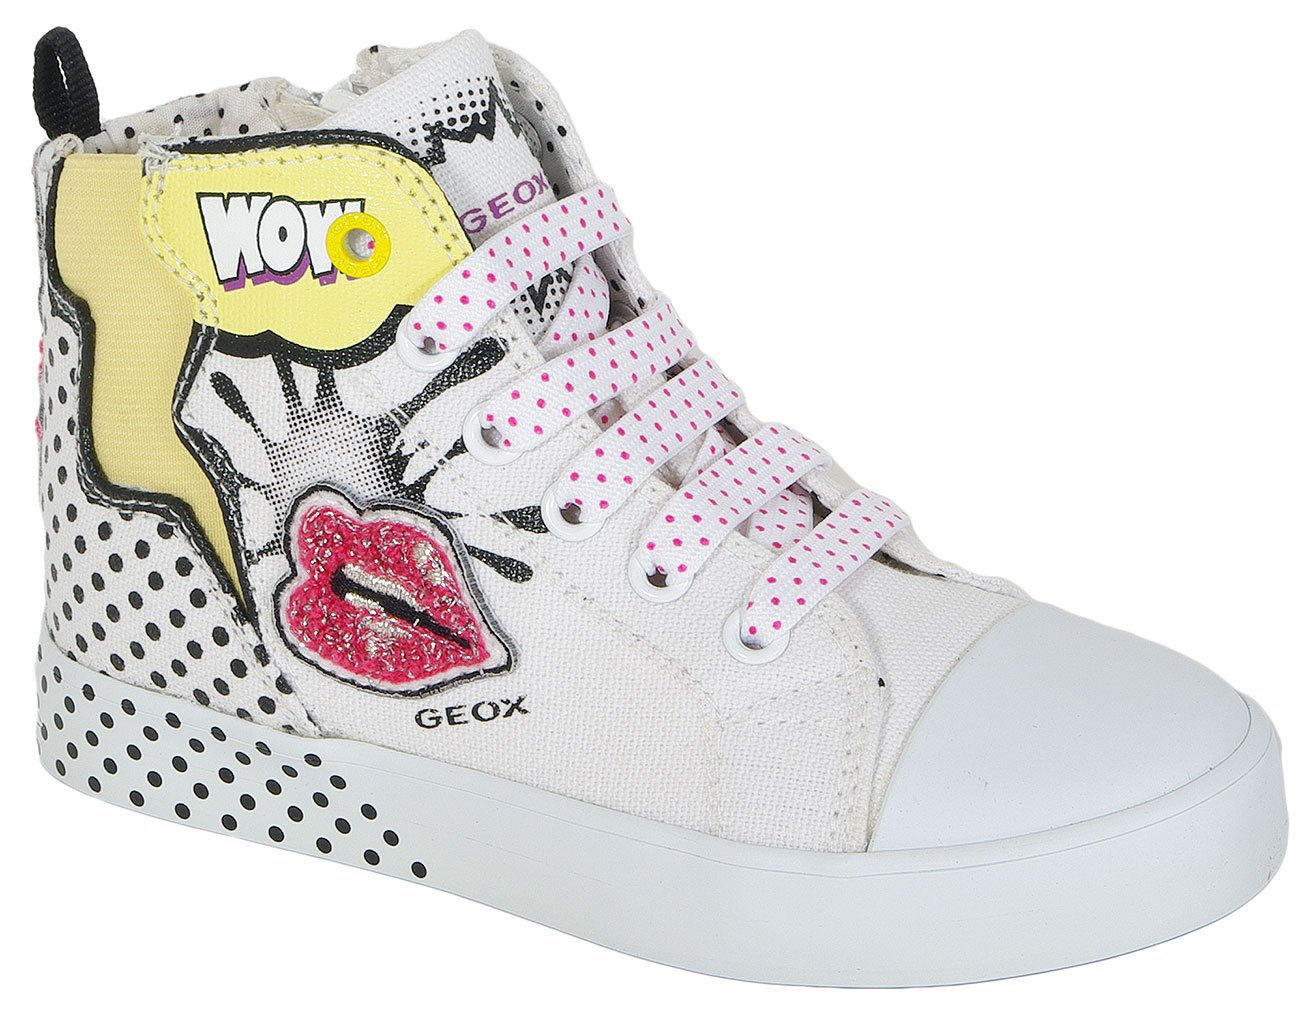 GEOX Ciak G A Print Canvas White sneakers